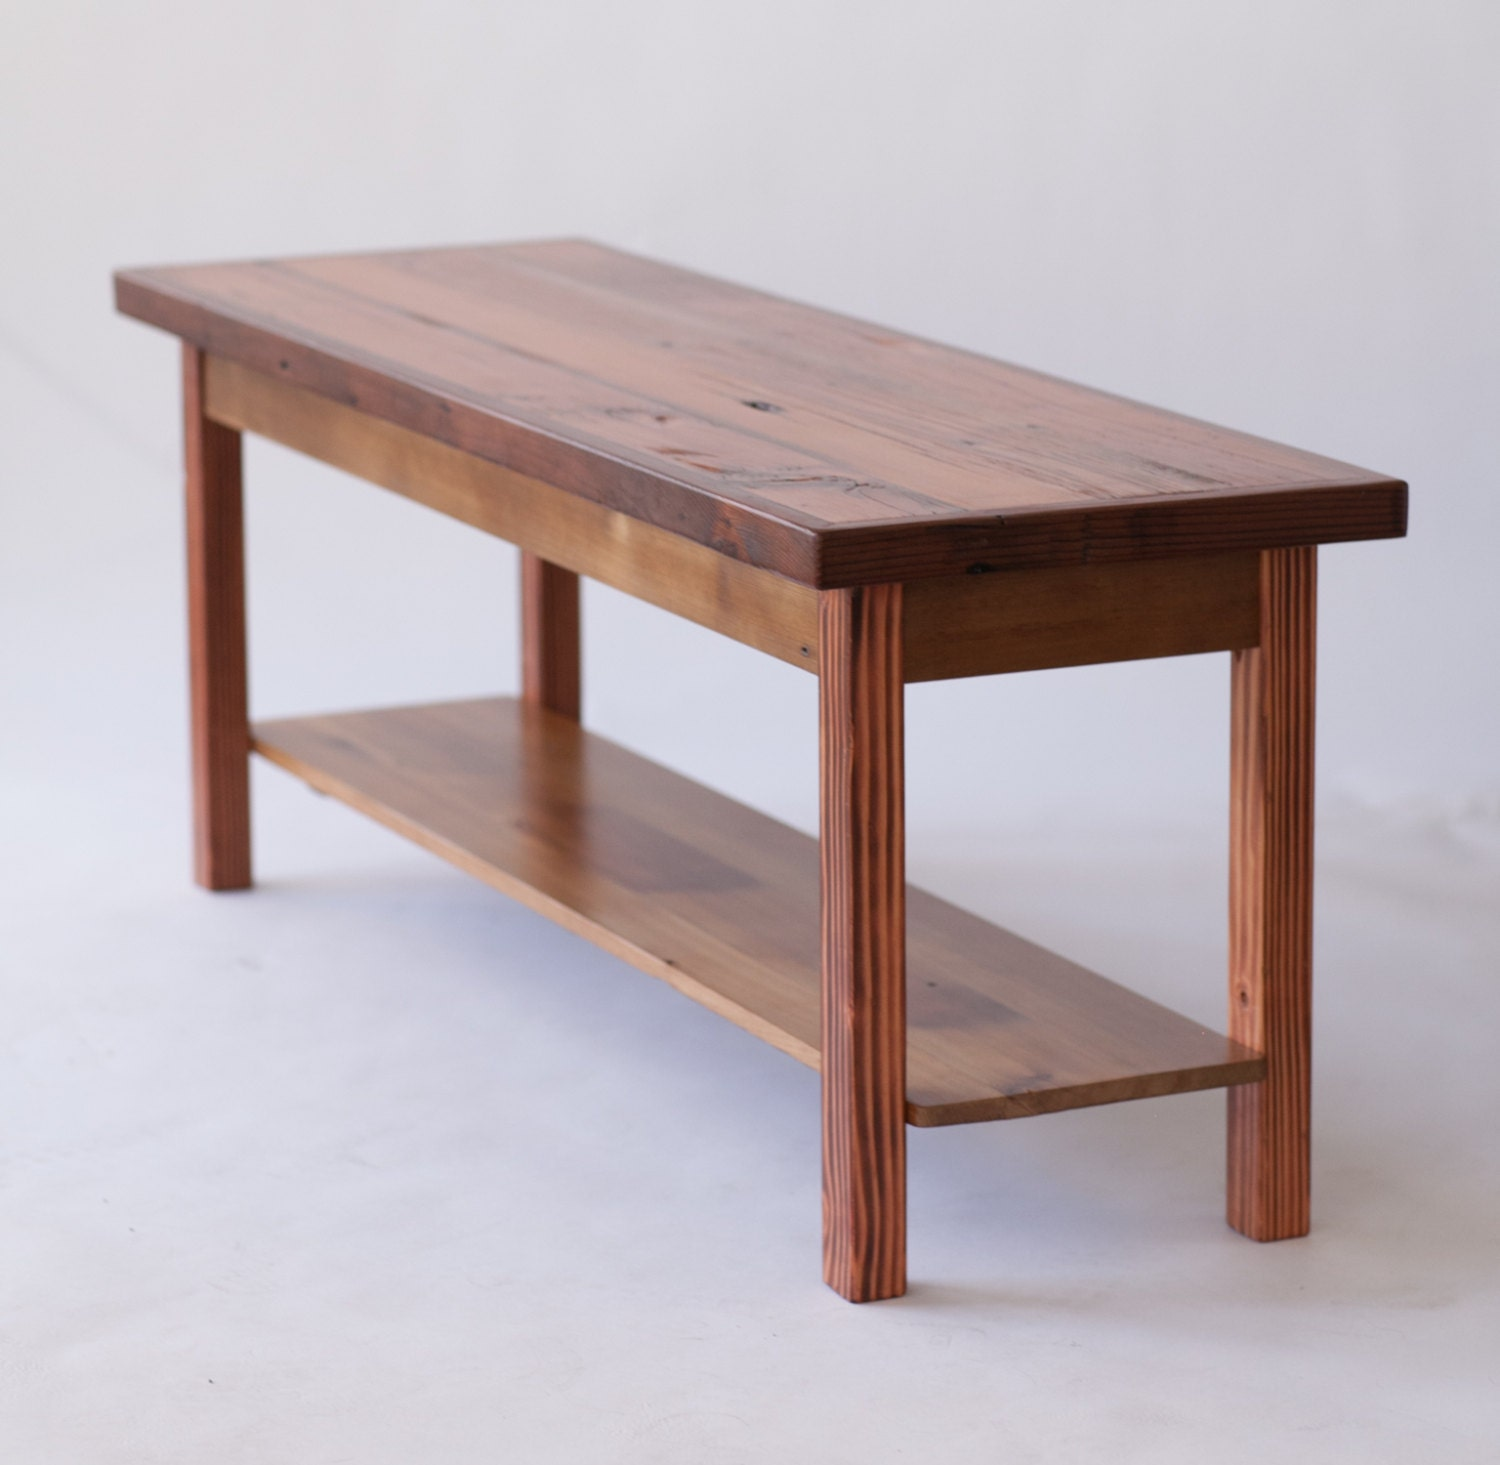 skinny reclaimed wood coffee table with shelf. Black Bedroom Furniture Sets. Home Design Ideas